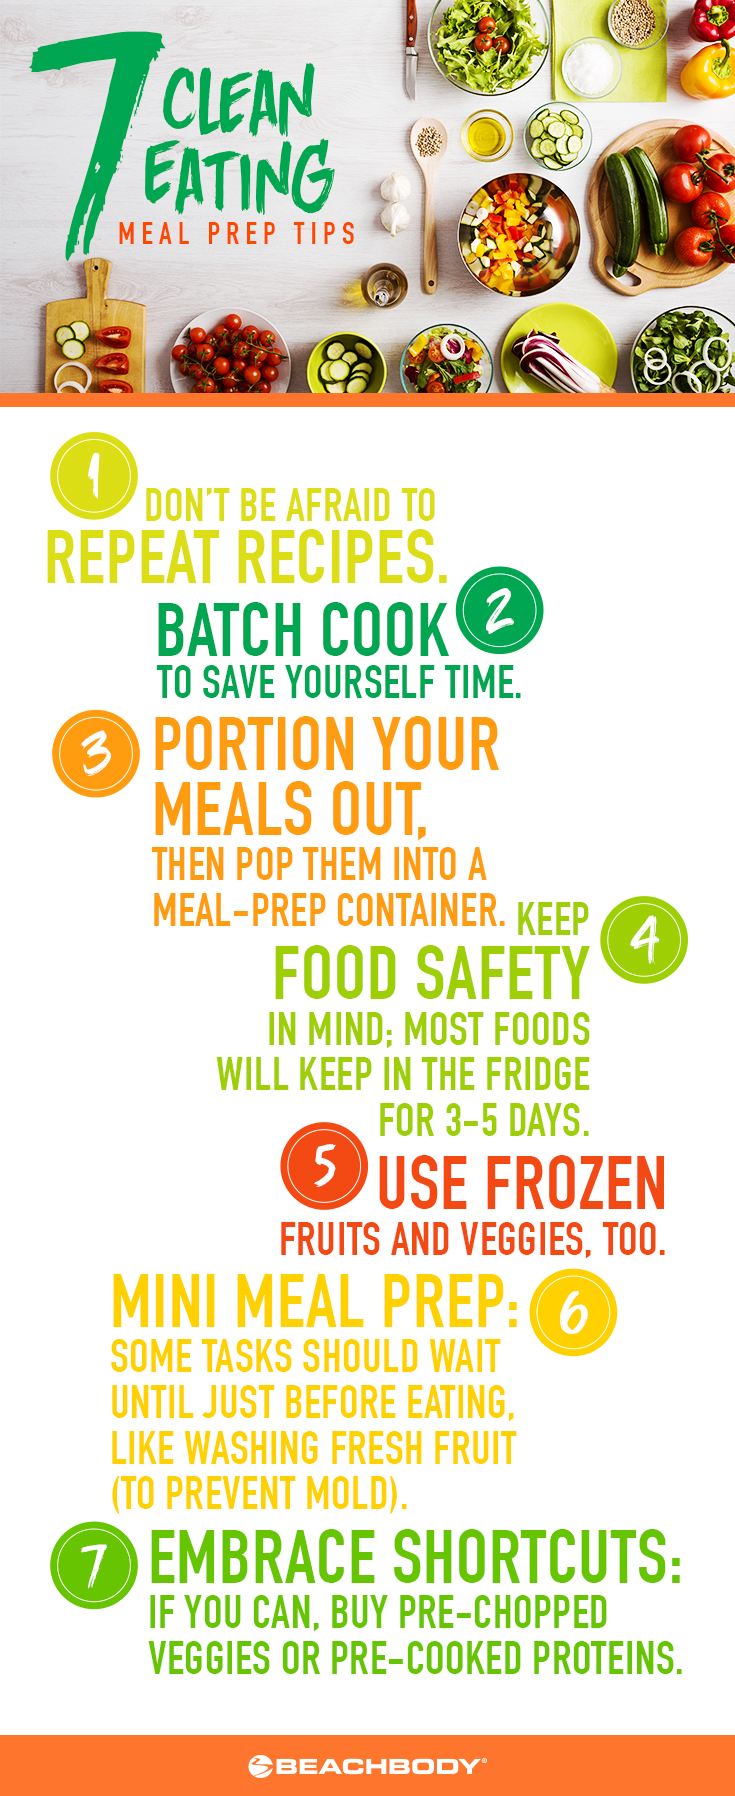 Clean Eating Meal Prep Tips | The Beachbody Blog